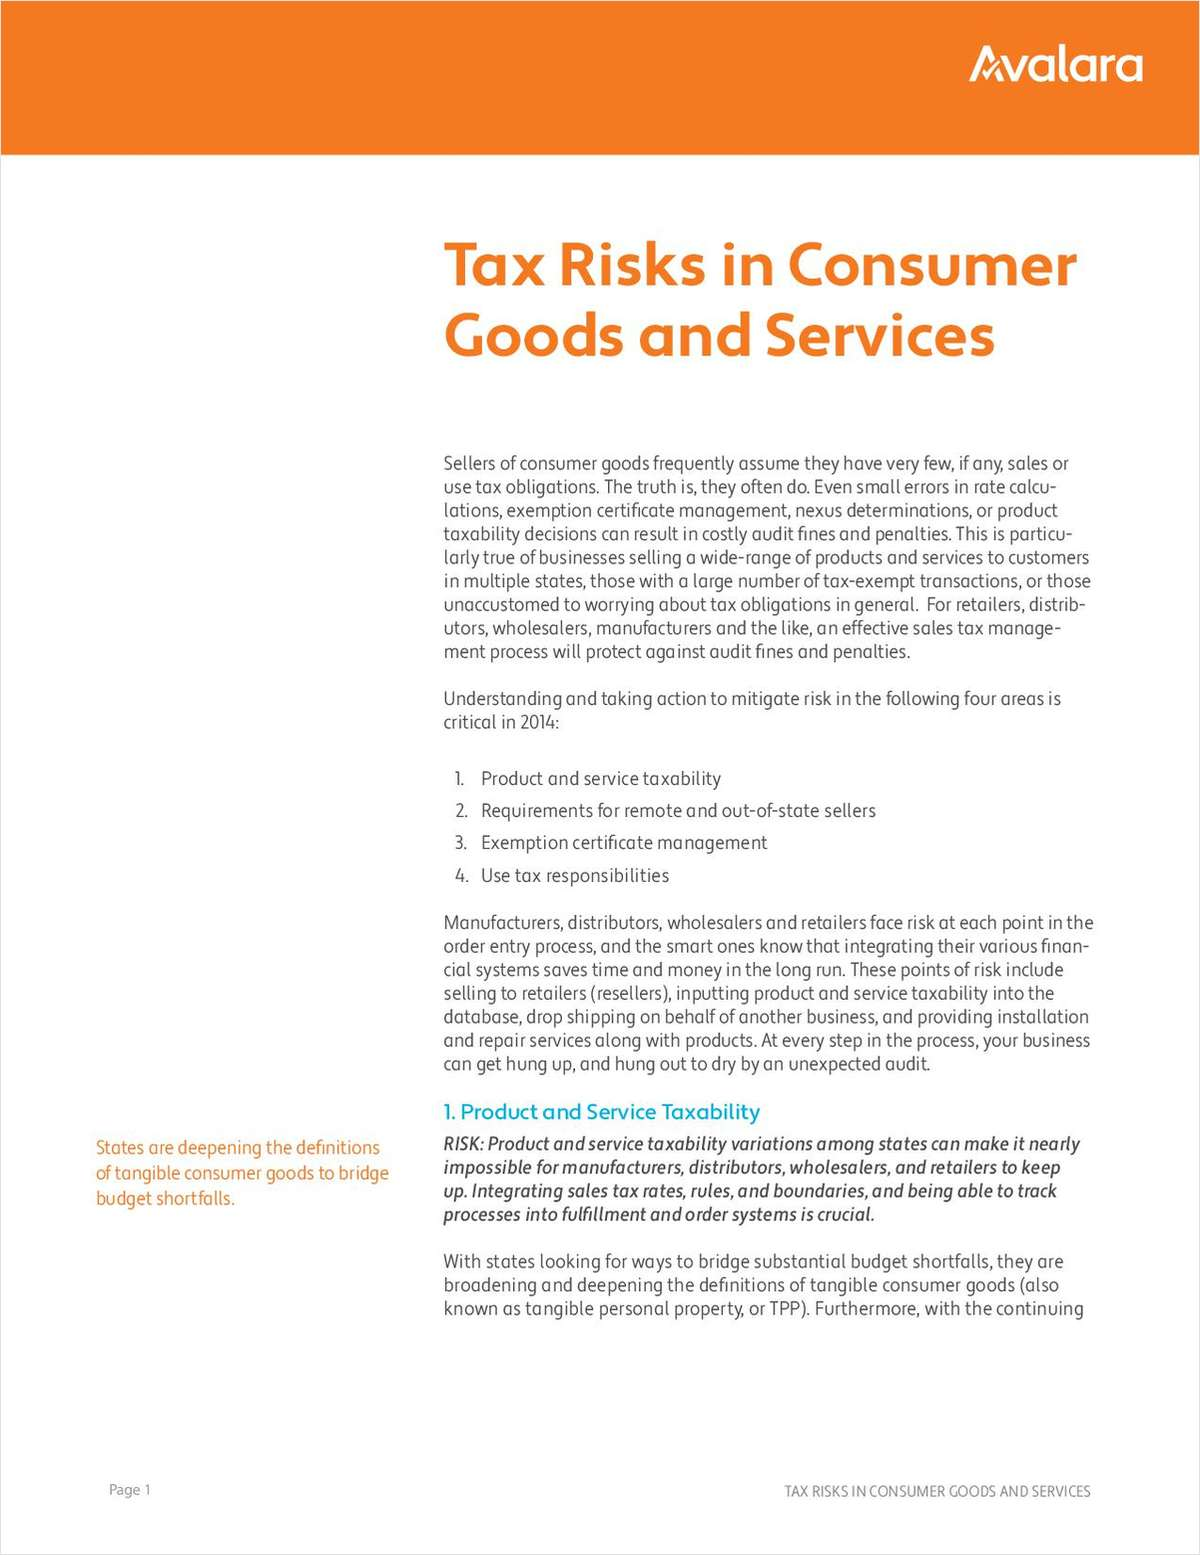 Tax Risks in Consumer Goods and Services